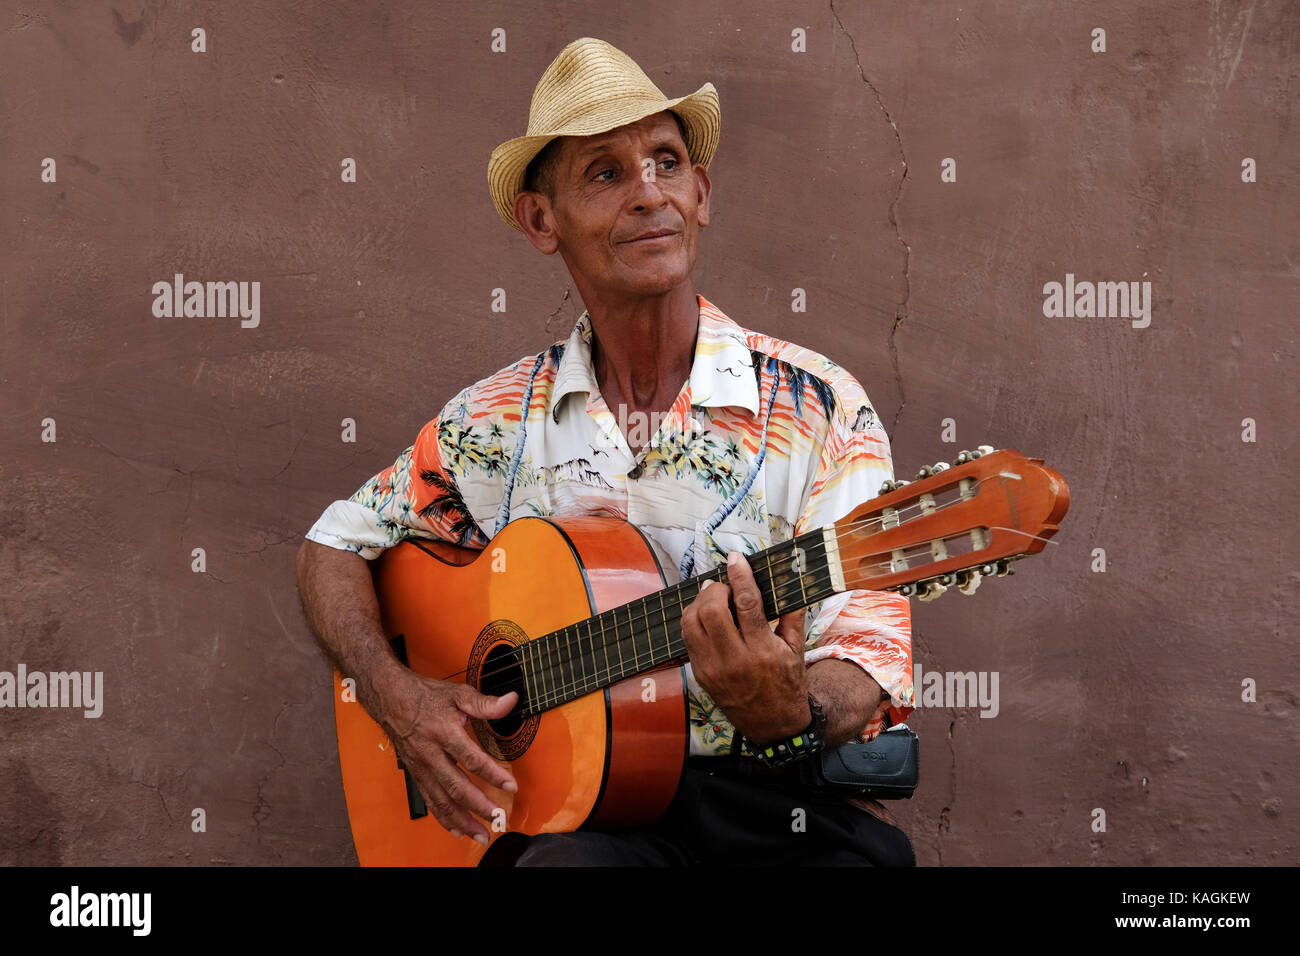 A Cuban man plays his guitar on the side of a street in town centre of Trinidad, Cuba. - Stock Image